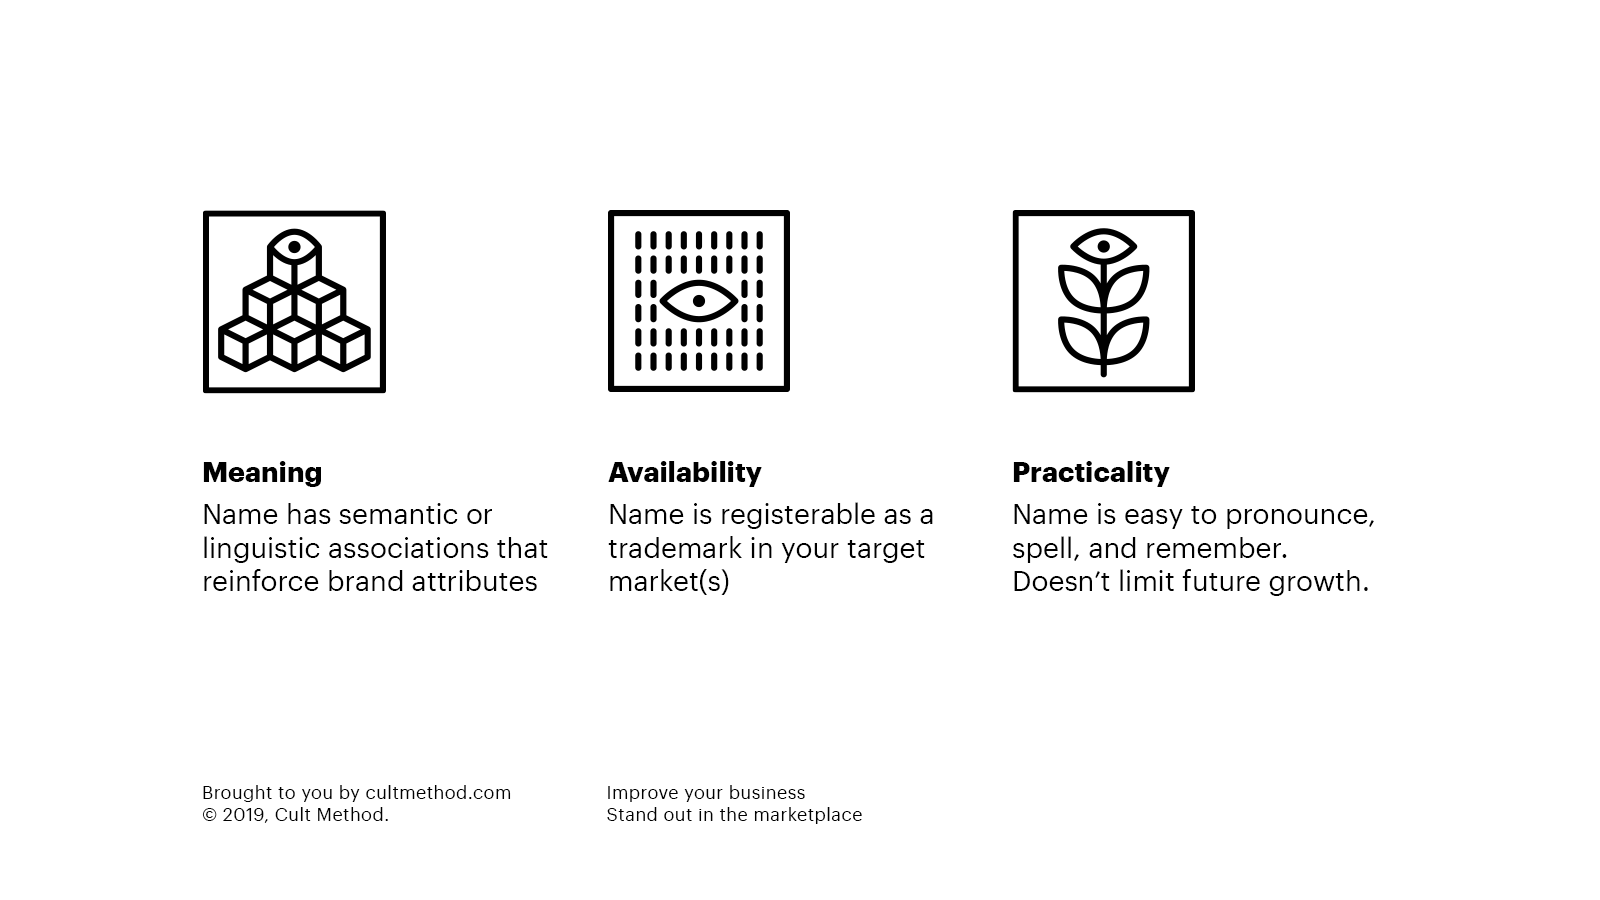 Three factors: Meaning, availability, practicality